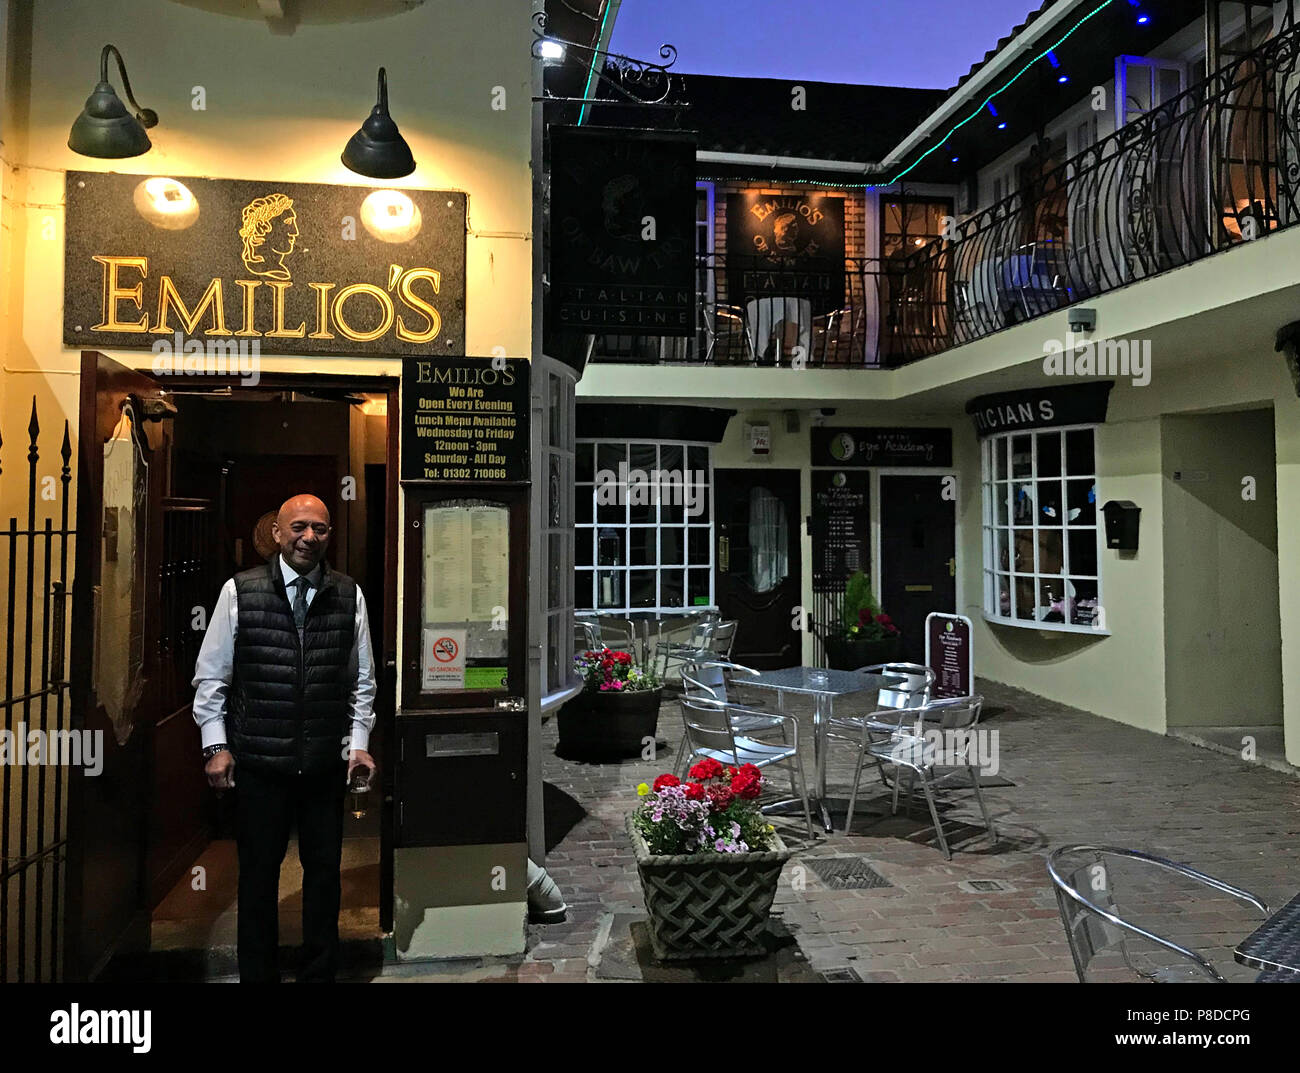 Emilio outside Emelios at dusk, 5-6 Dower House Square, Bawtry, Doncaster, South Yorkshire, England, UK, DN10 6LS - Stock Image